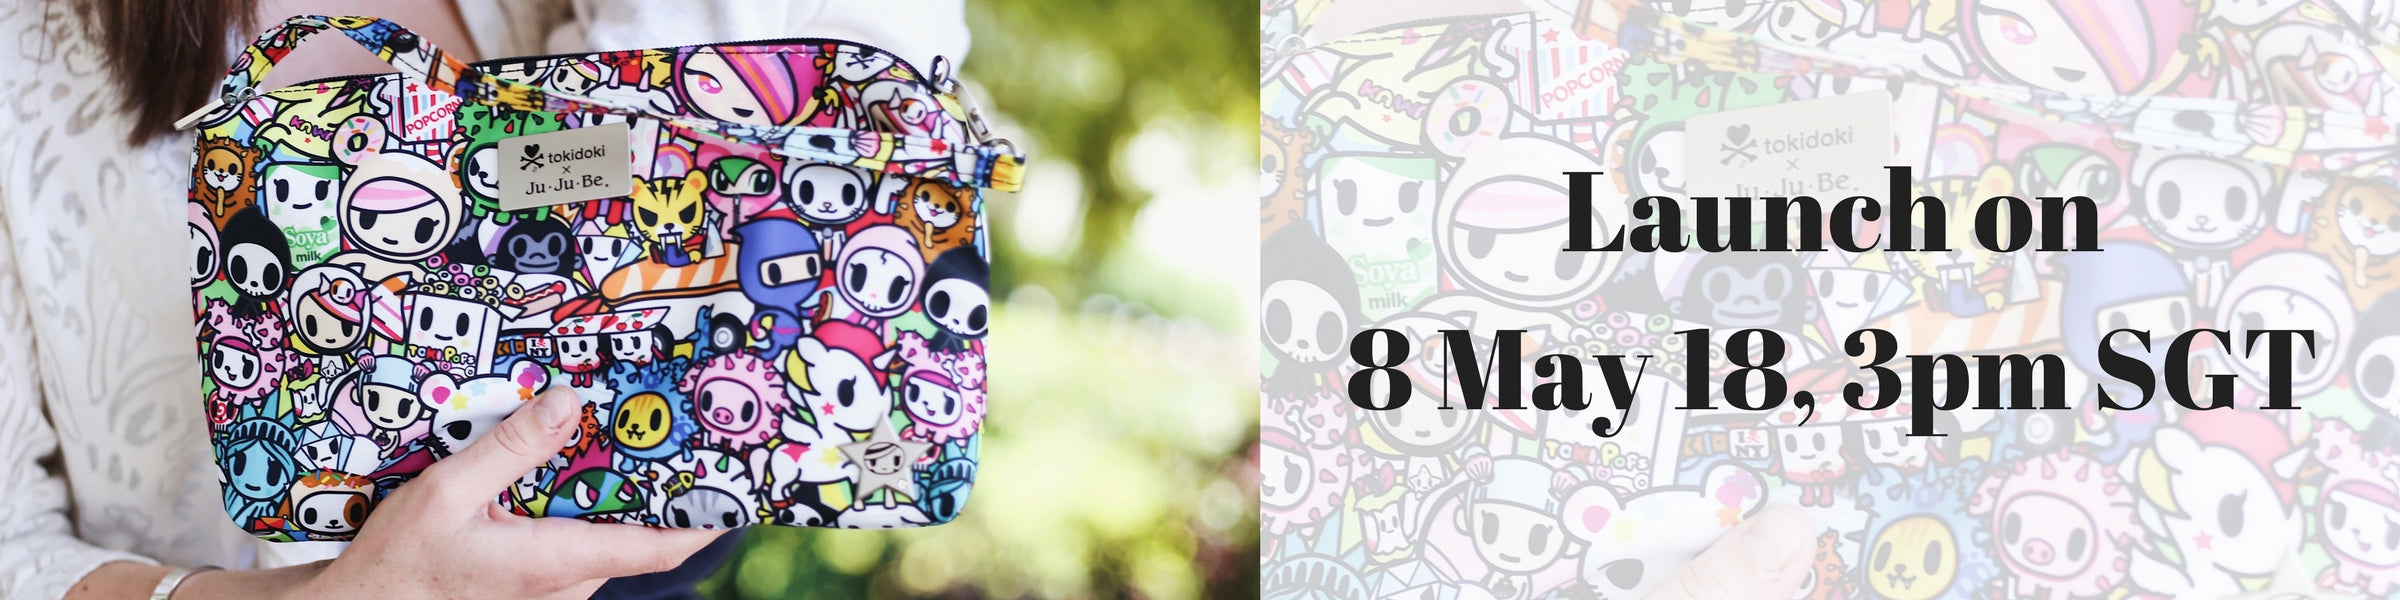 Jujube Tokidoki Iconic 2.0 Launch Singapore